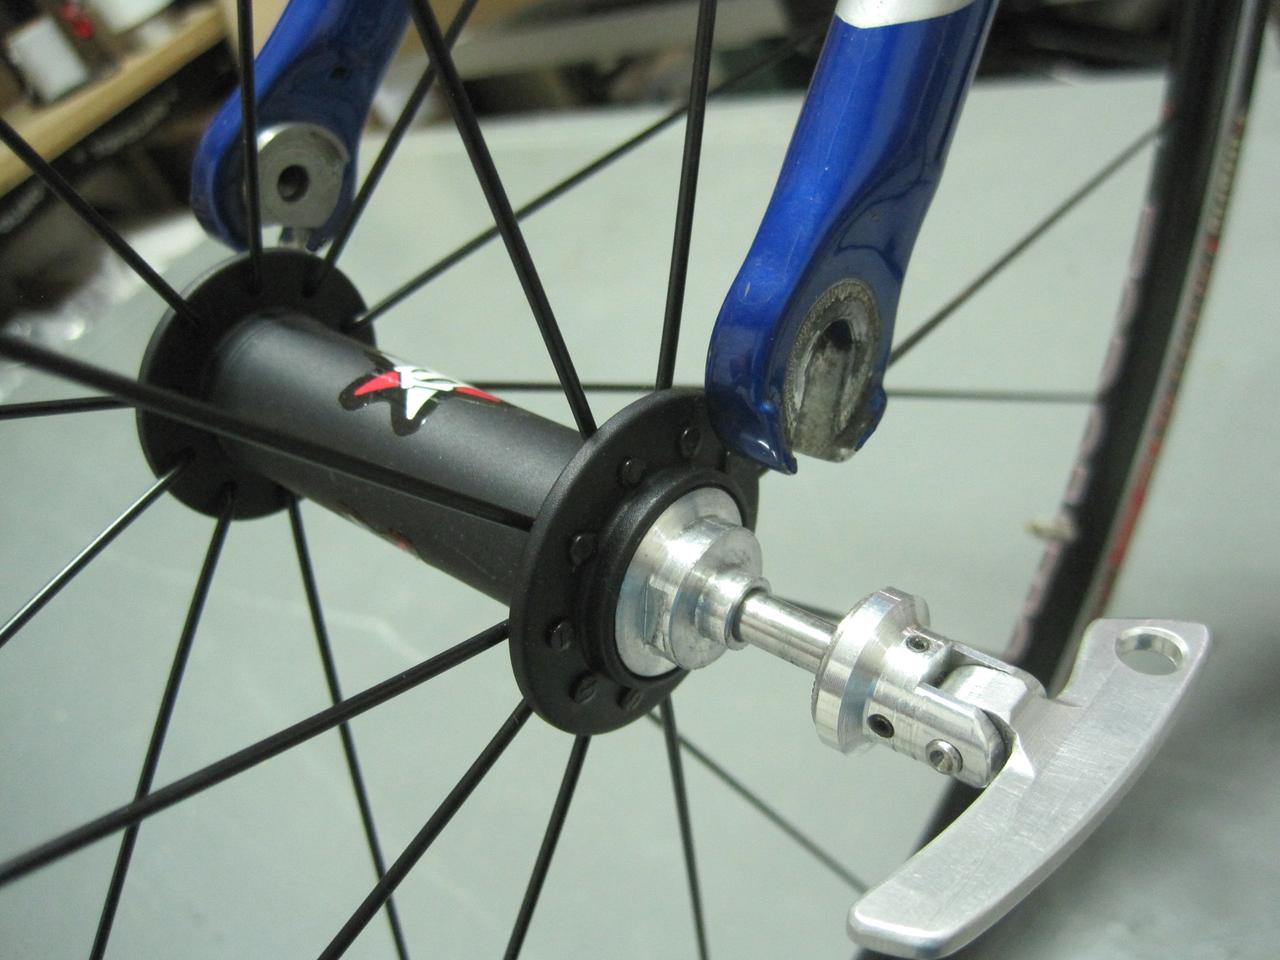 The SPEEDrelease hub works with regular dropouts, equipped with an adapter